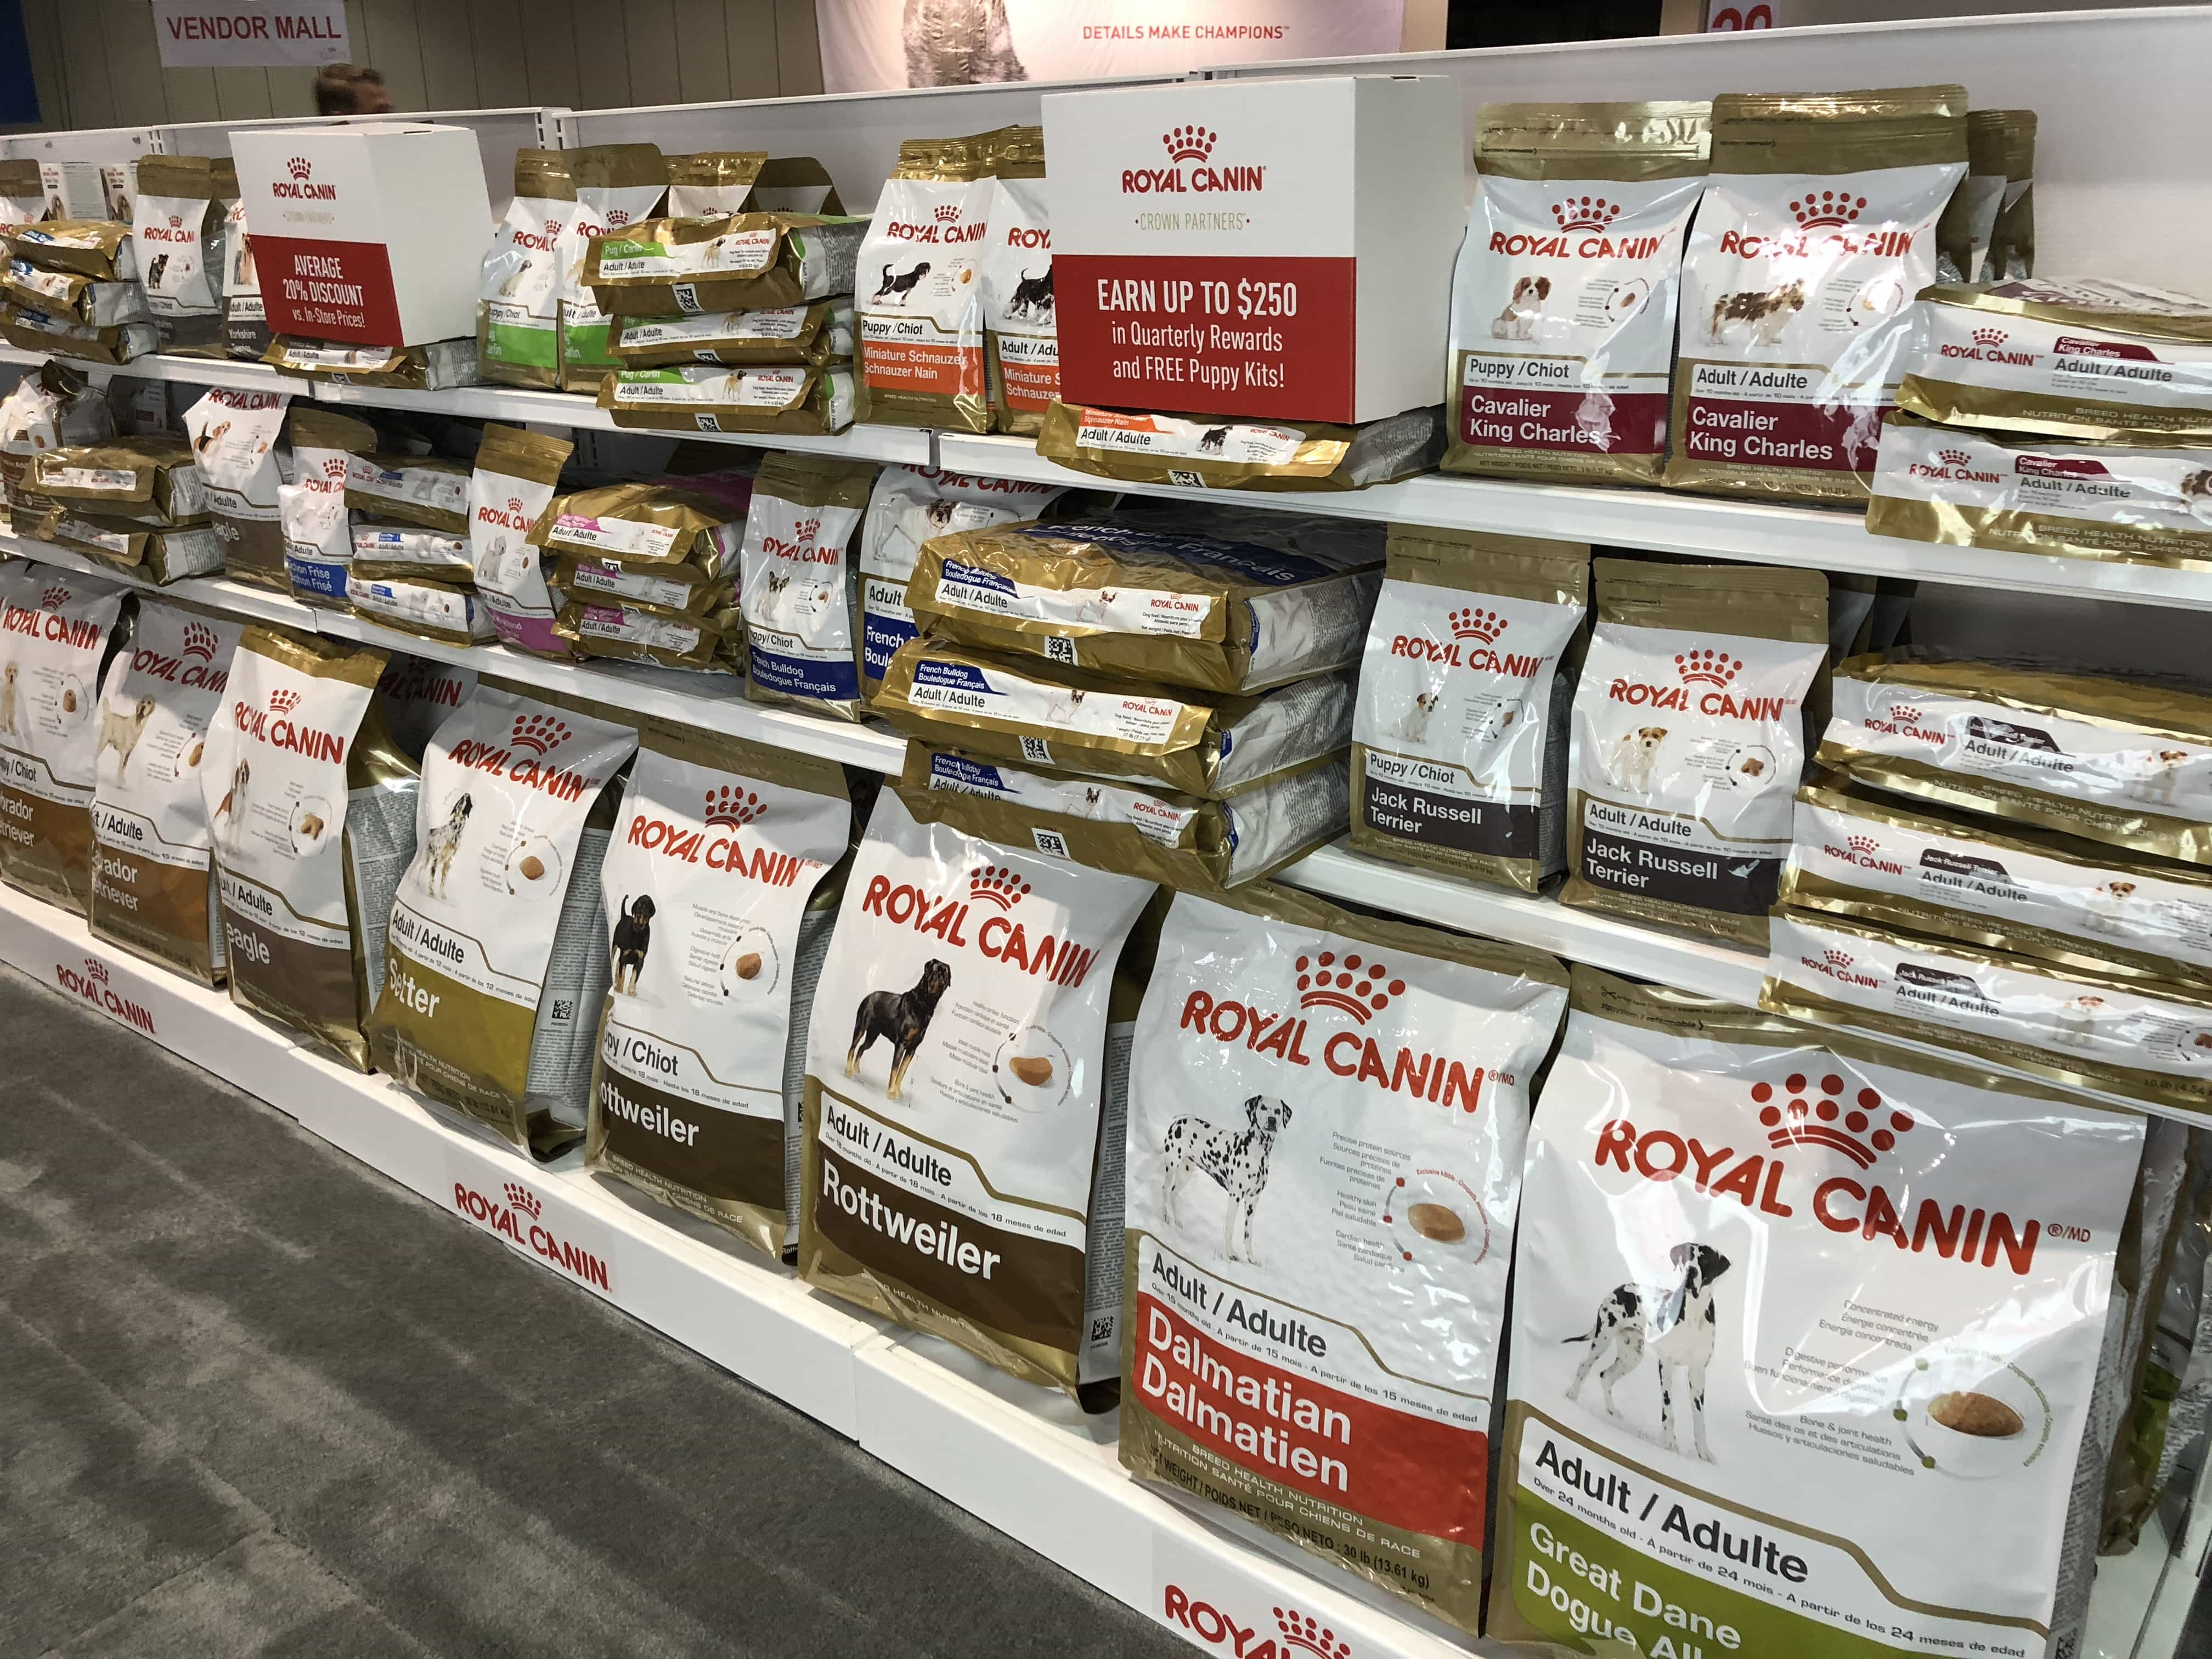 An Insider's Guide to the American Kennel Club Dog Show: Royal Canin Food